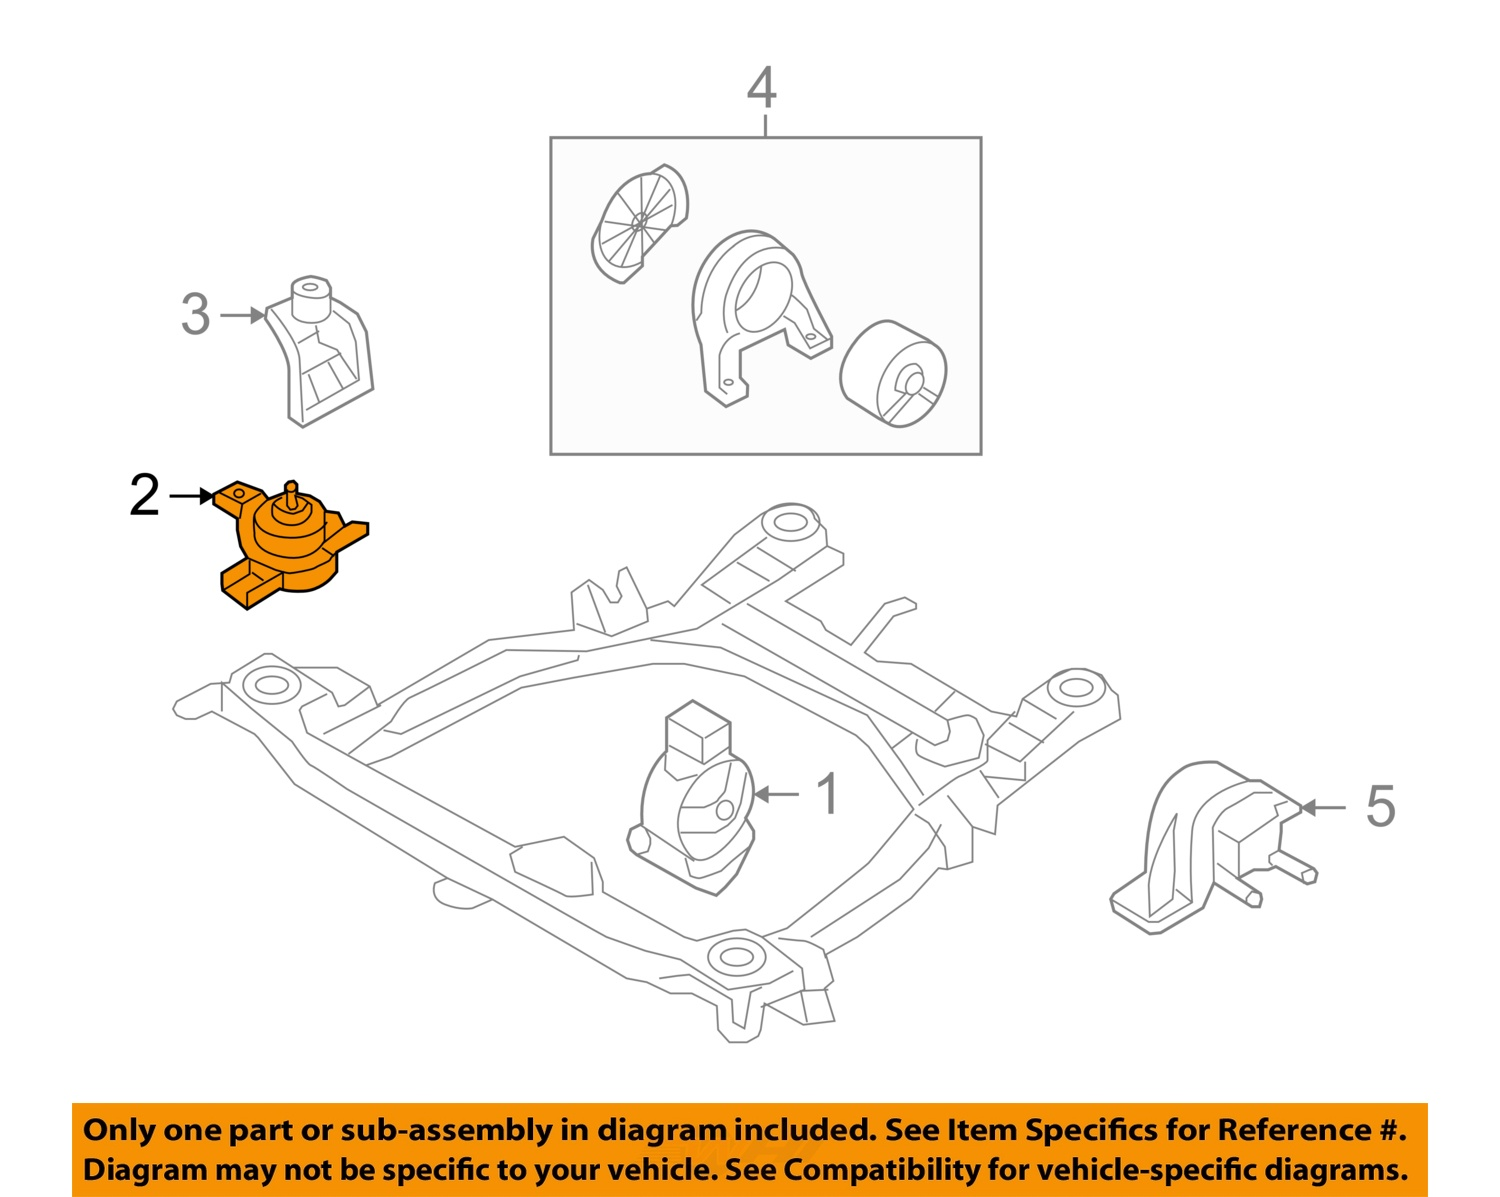 Hyundai Santa Fe Engine Mounts Diagram Wiring Library 2 On Only Genuine Oe Factory Original Item Oem 10 12